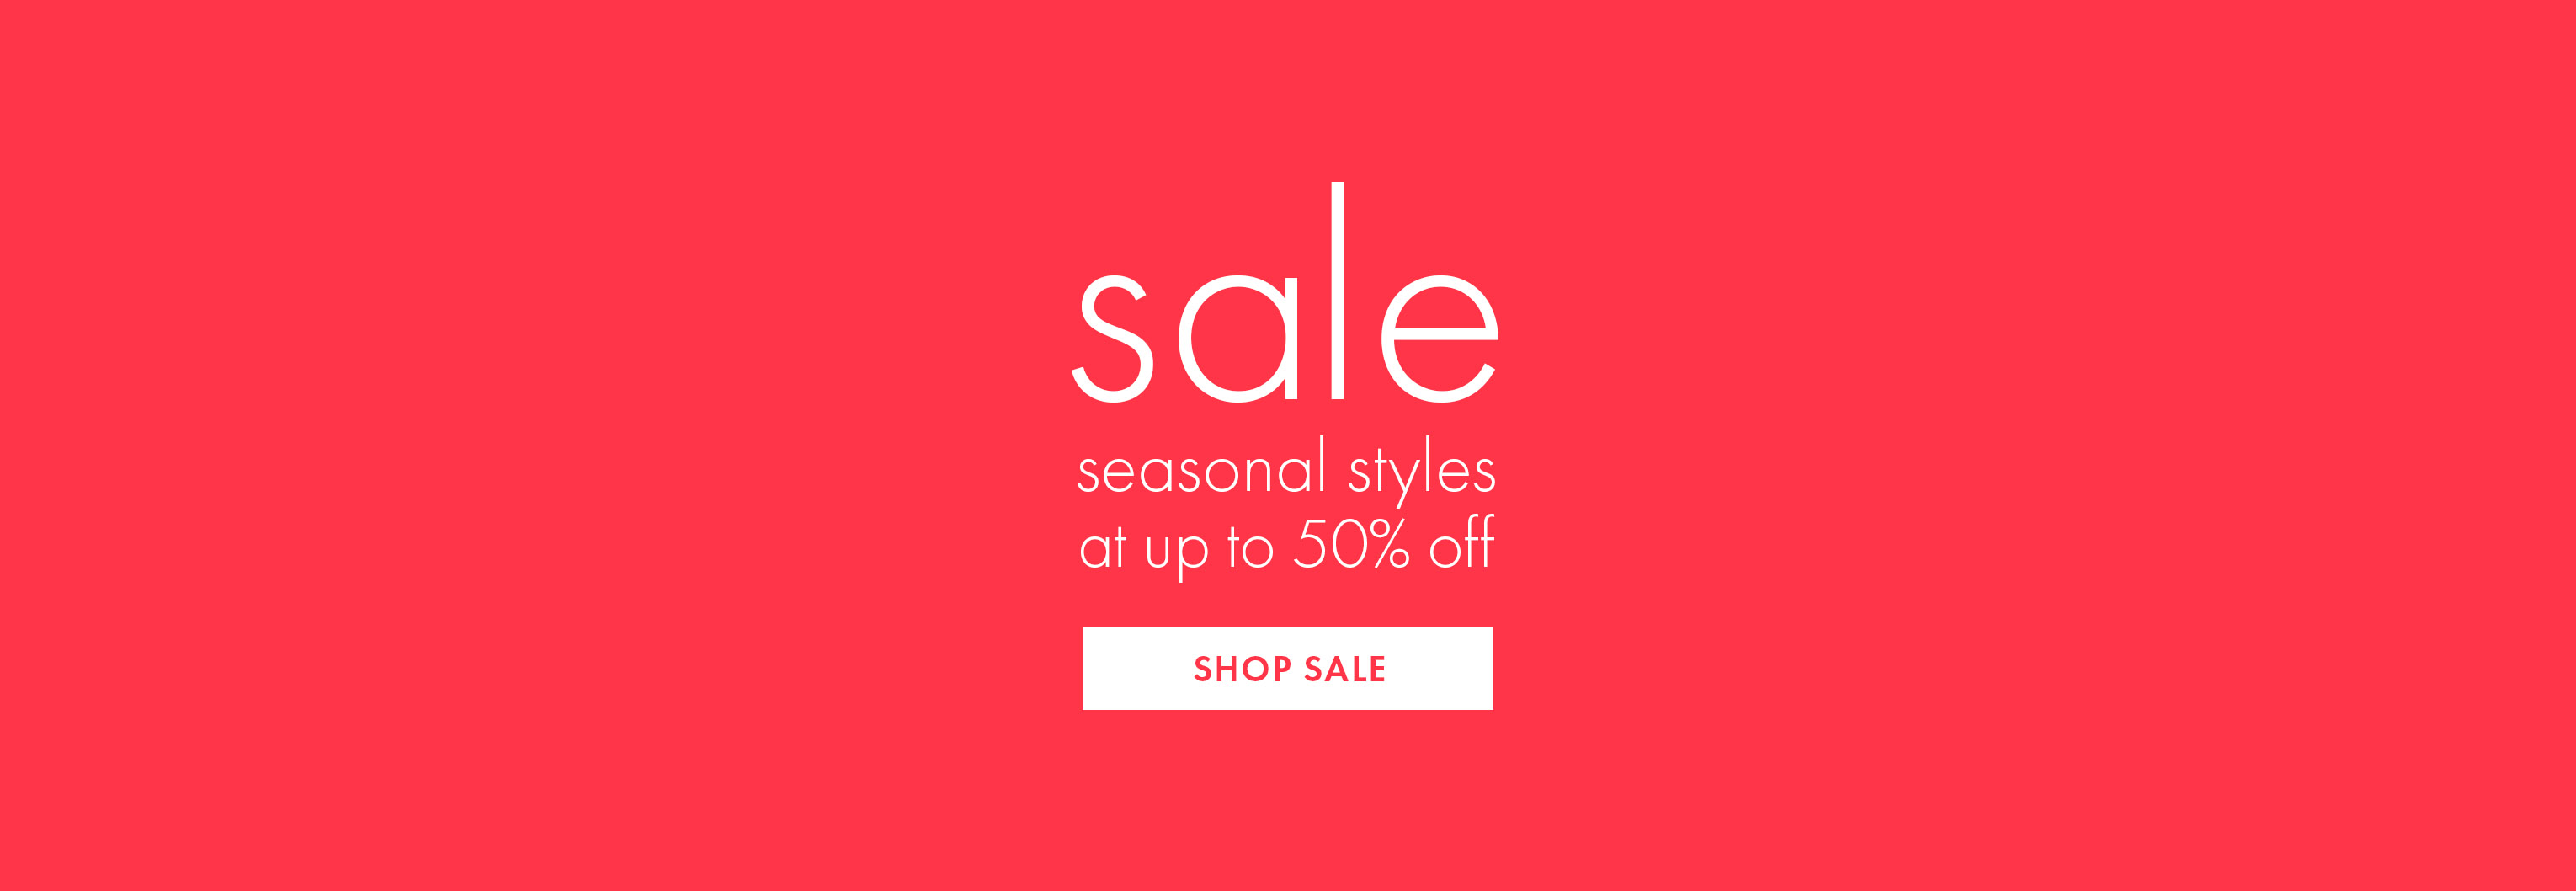 Sale: Seasonal styles at up to 50% off